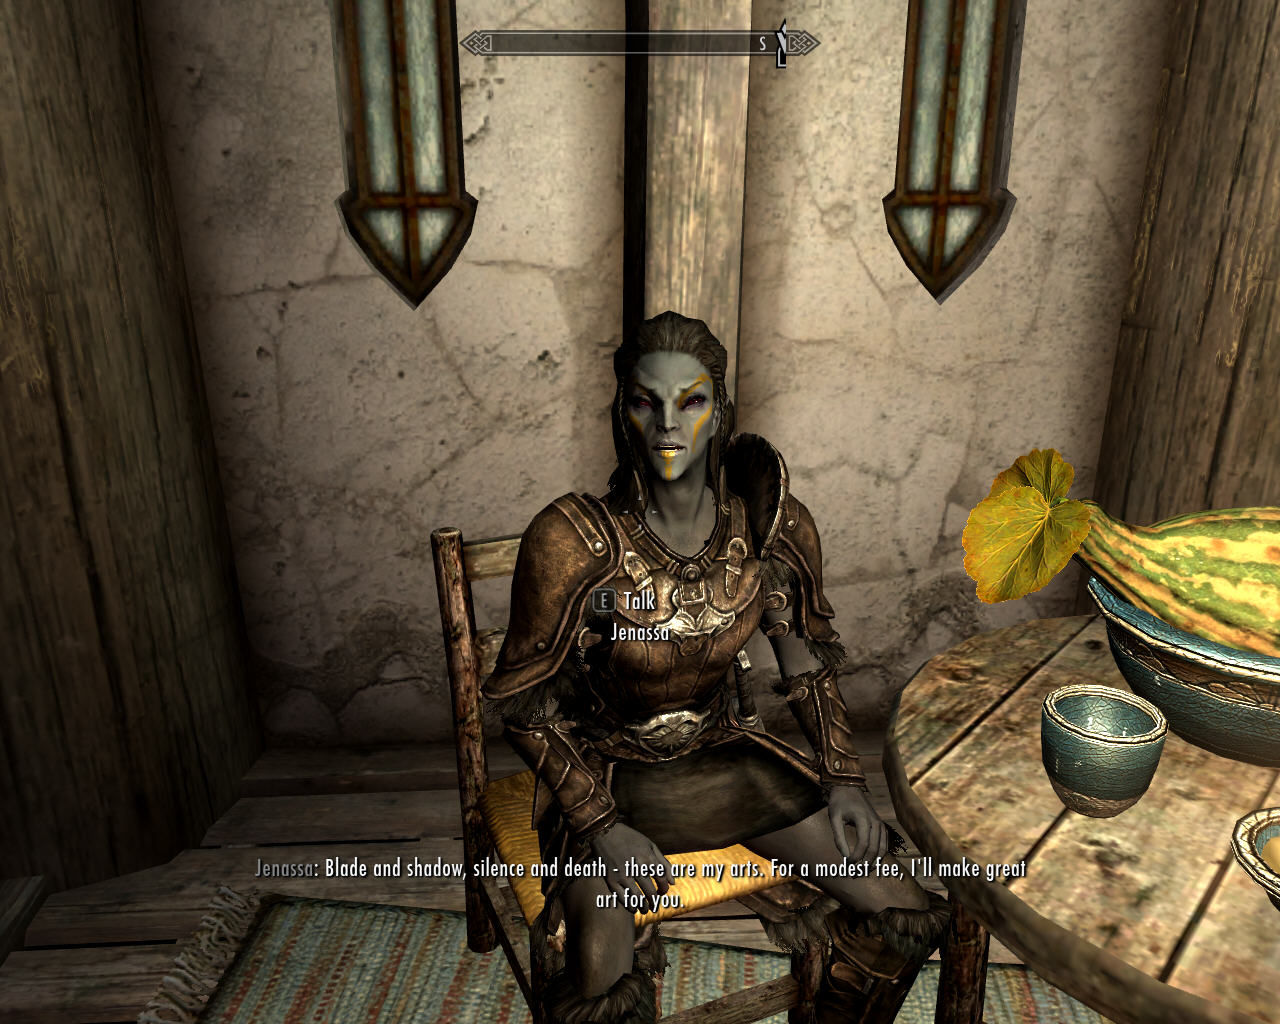 The Elder Scrolls V: Skyrim Windows You'll meet many mysteriously-looking characters with their own agenda